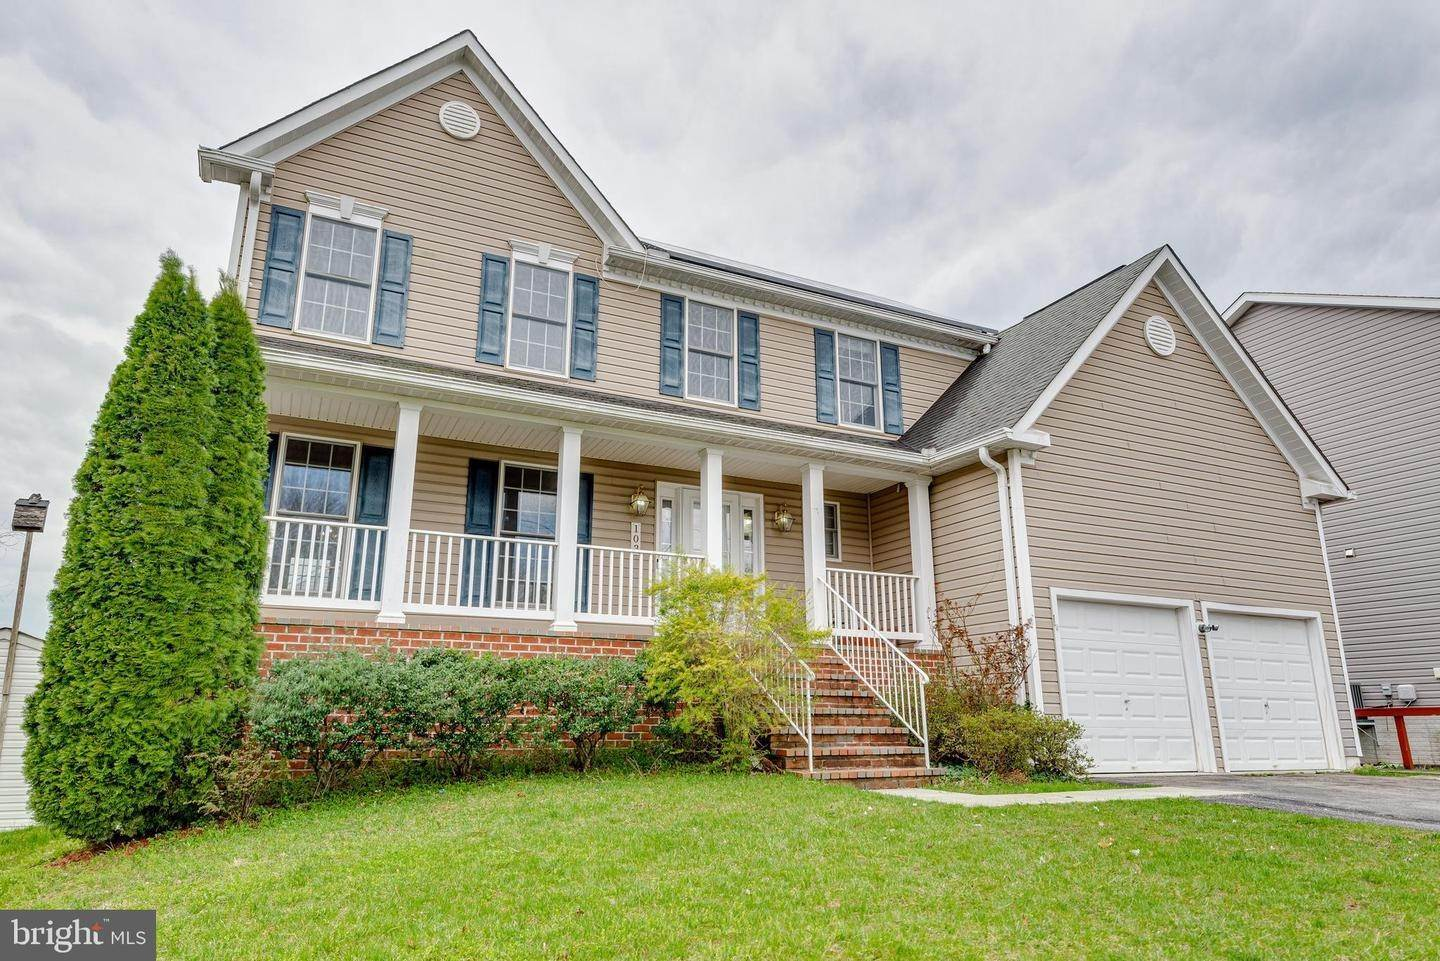 1. Single Family Homes alle Severna Park, Maryland, 21146 Stati Uniti